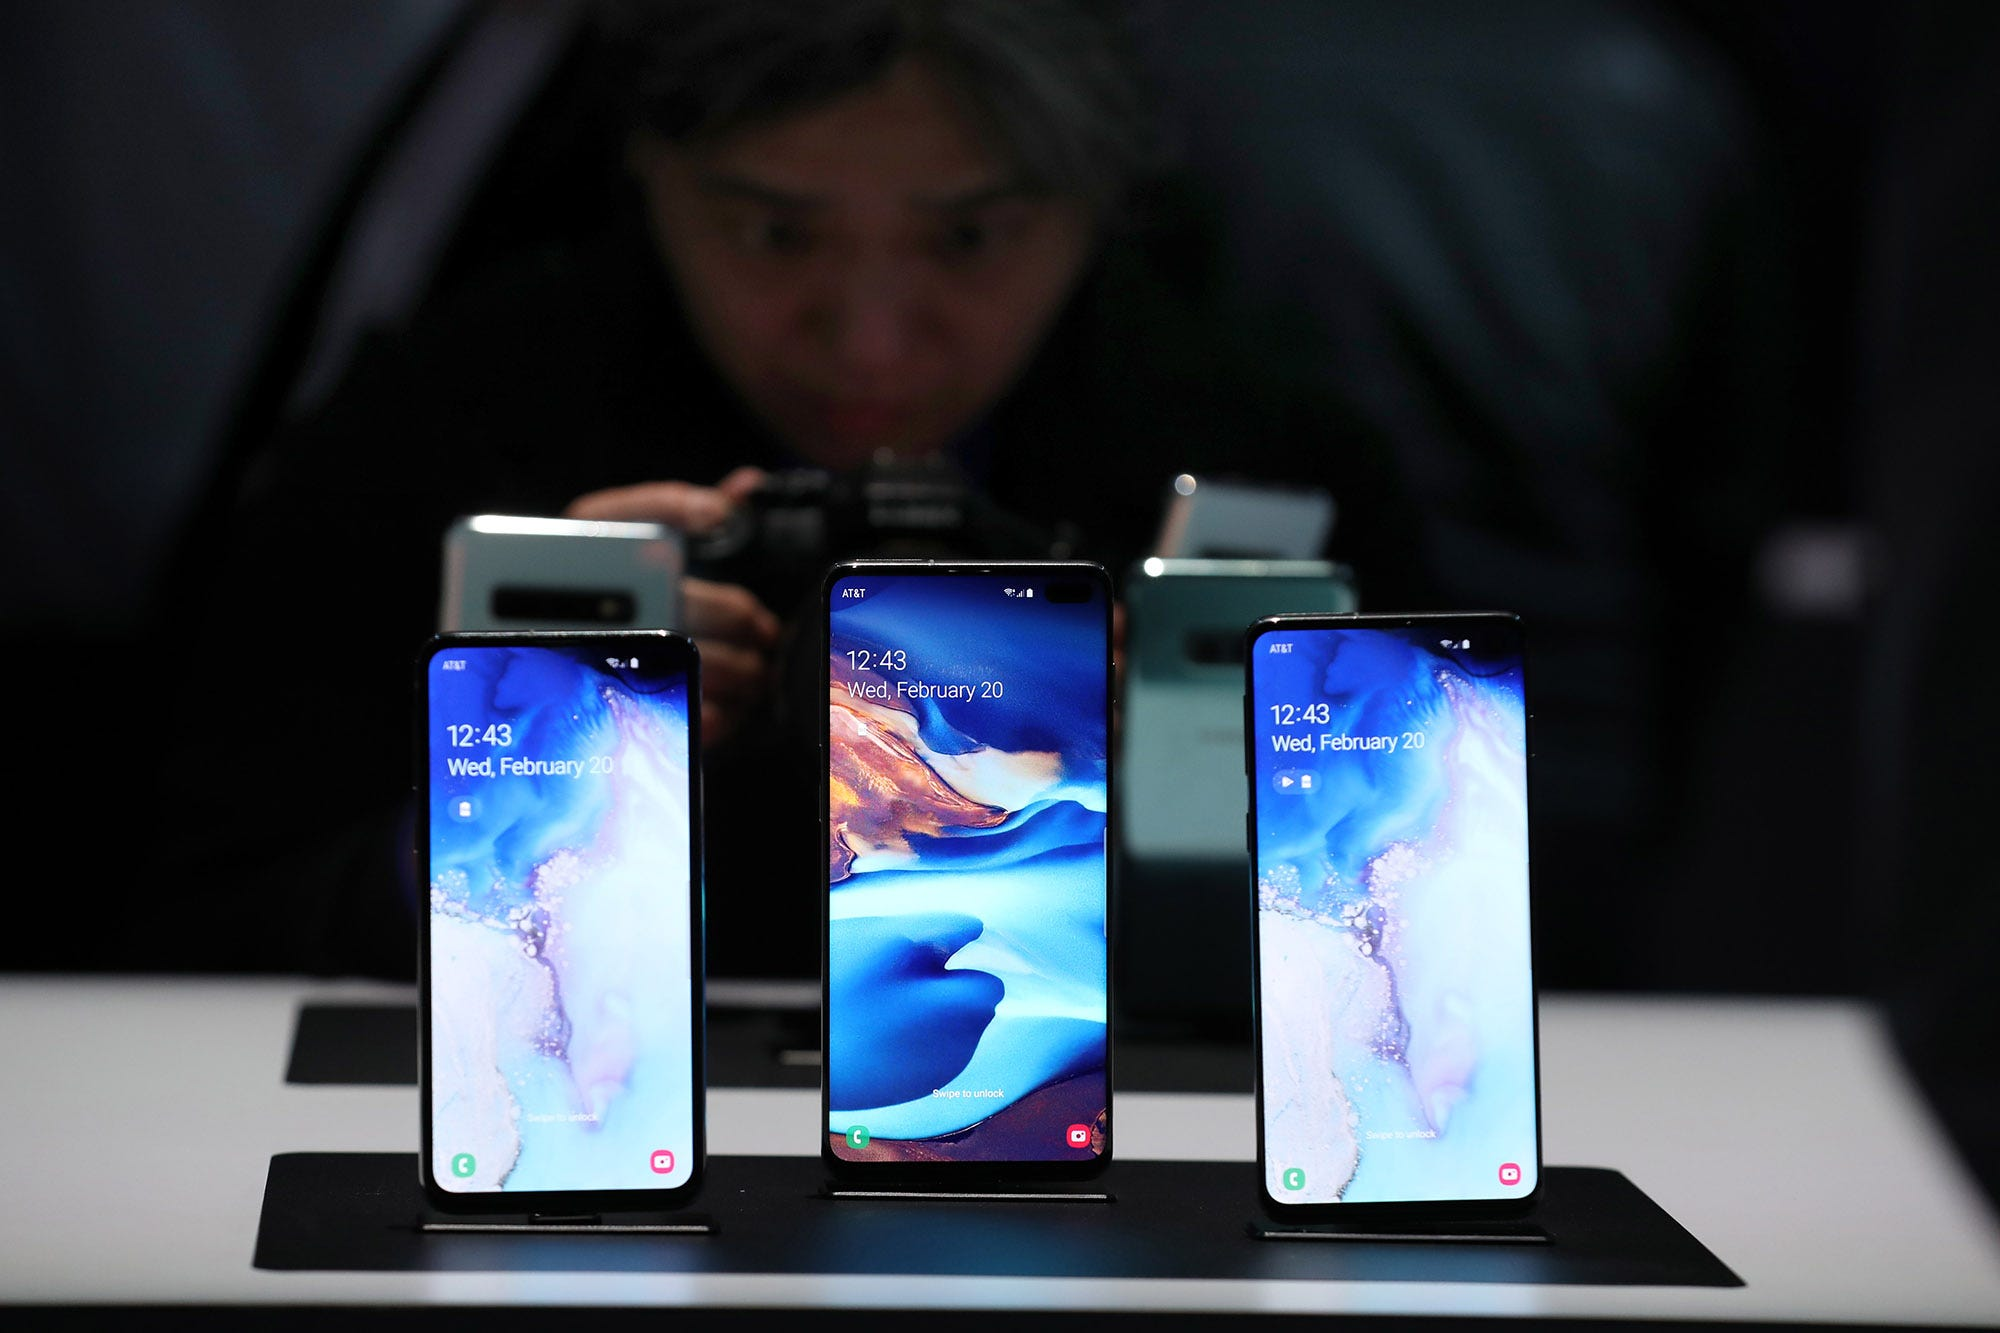 (L-R) New Samsung Galaxy S10e, Galaxy S10 + and Galaxy S10 smartphones are displayed during the Samsung Unpacked event on February 20, 2019 in San Francisco, California. Samsung announced a new sophisticated smartphone, the Samsung Galaxy Fold, as well as new Galaxy S10 and Galaxy Buds headphones.